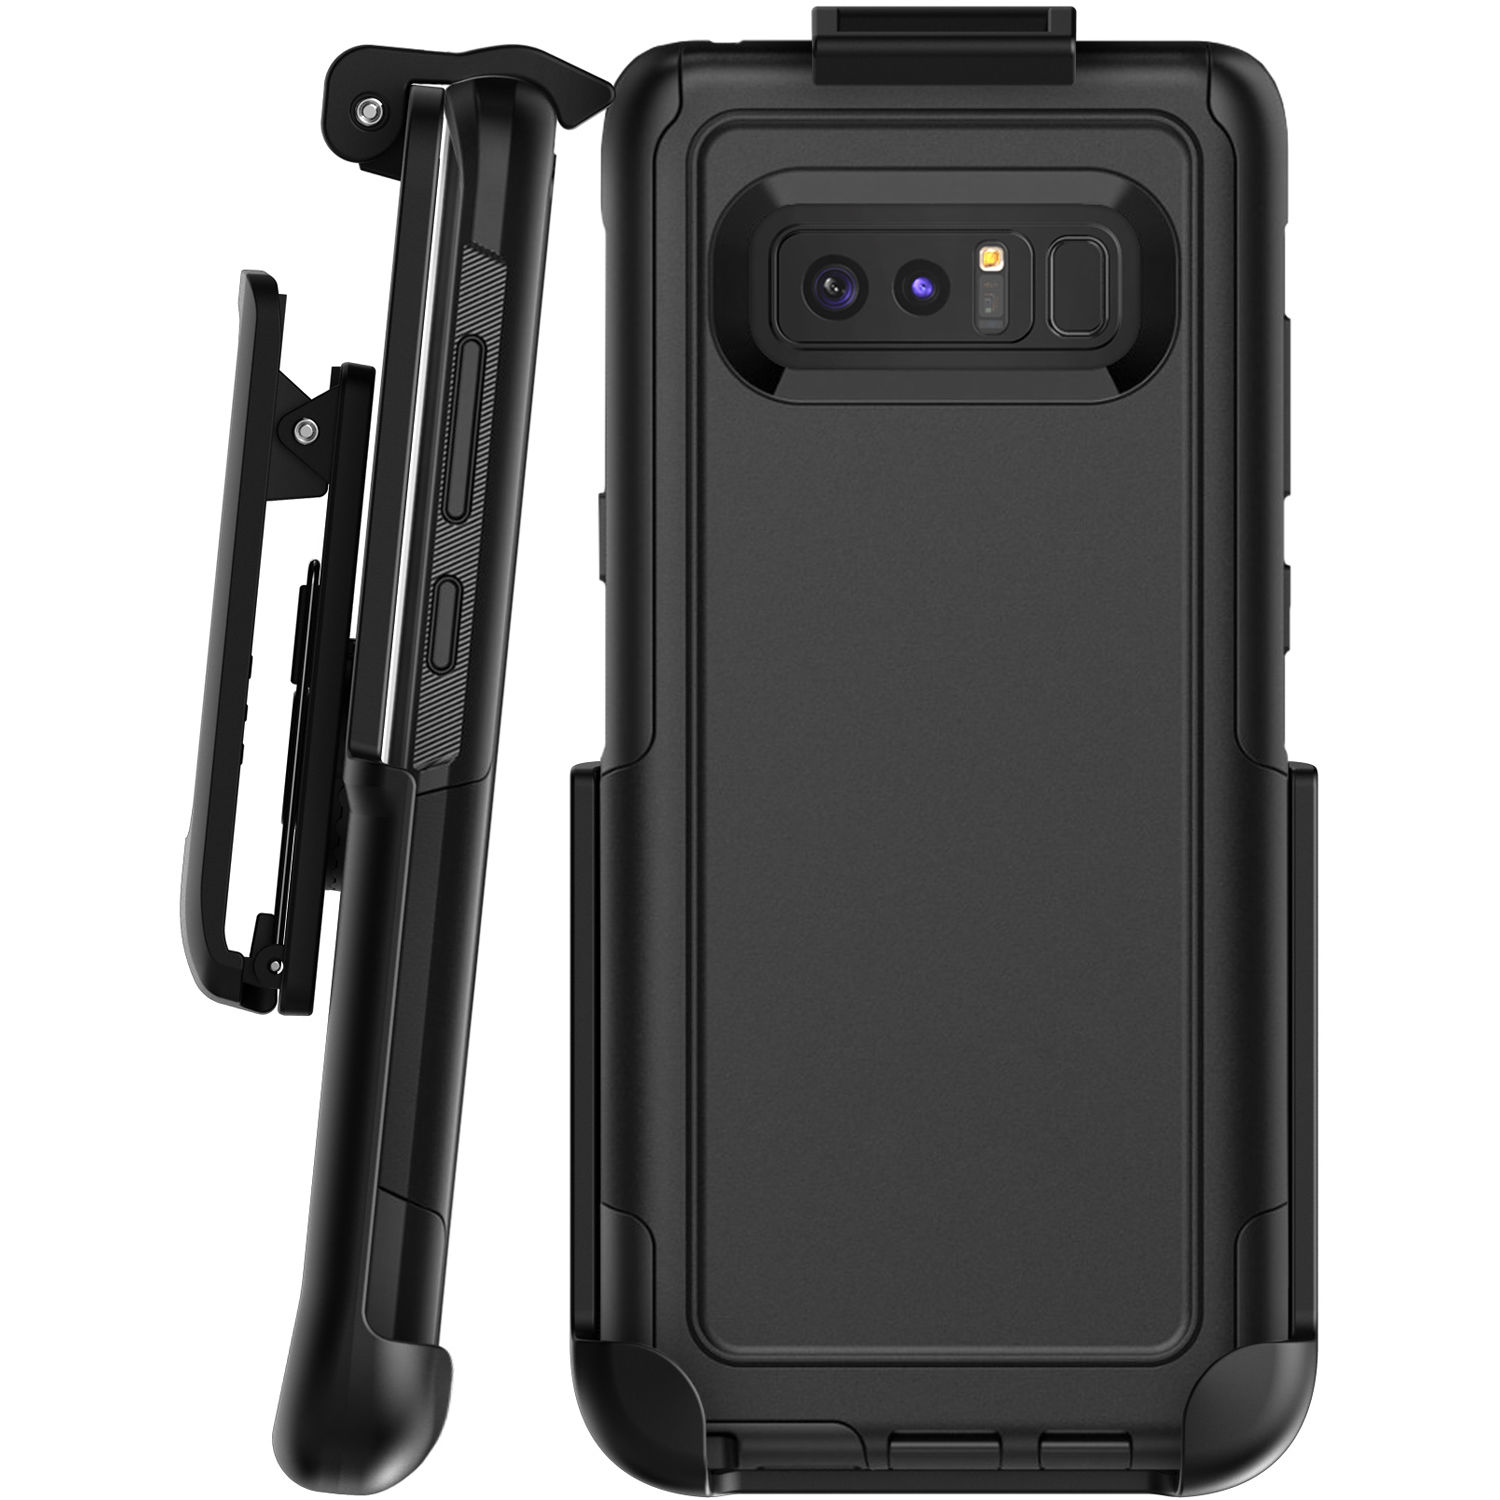 100% authentic 2e5fc 018f5 Encased Belt Clip Holster for Galaxy Note8 OtterBox Commuter Case